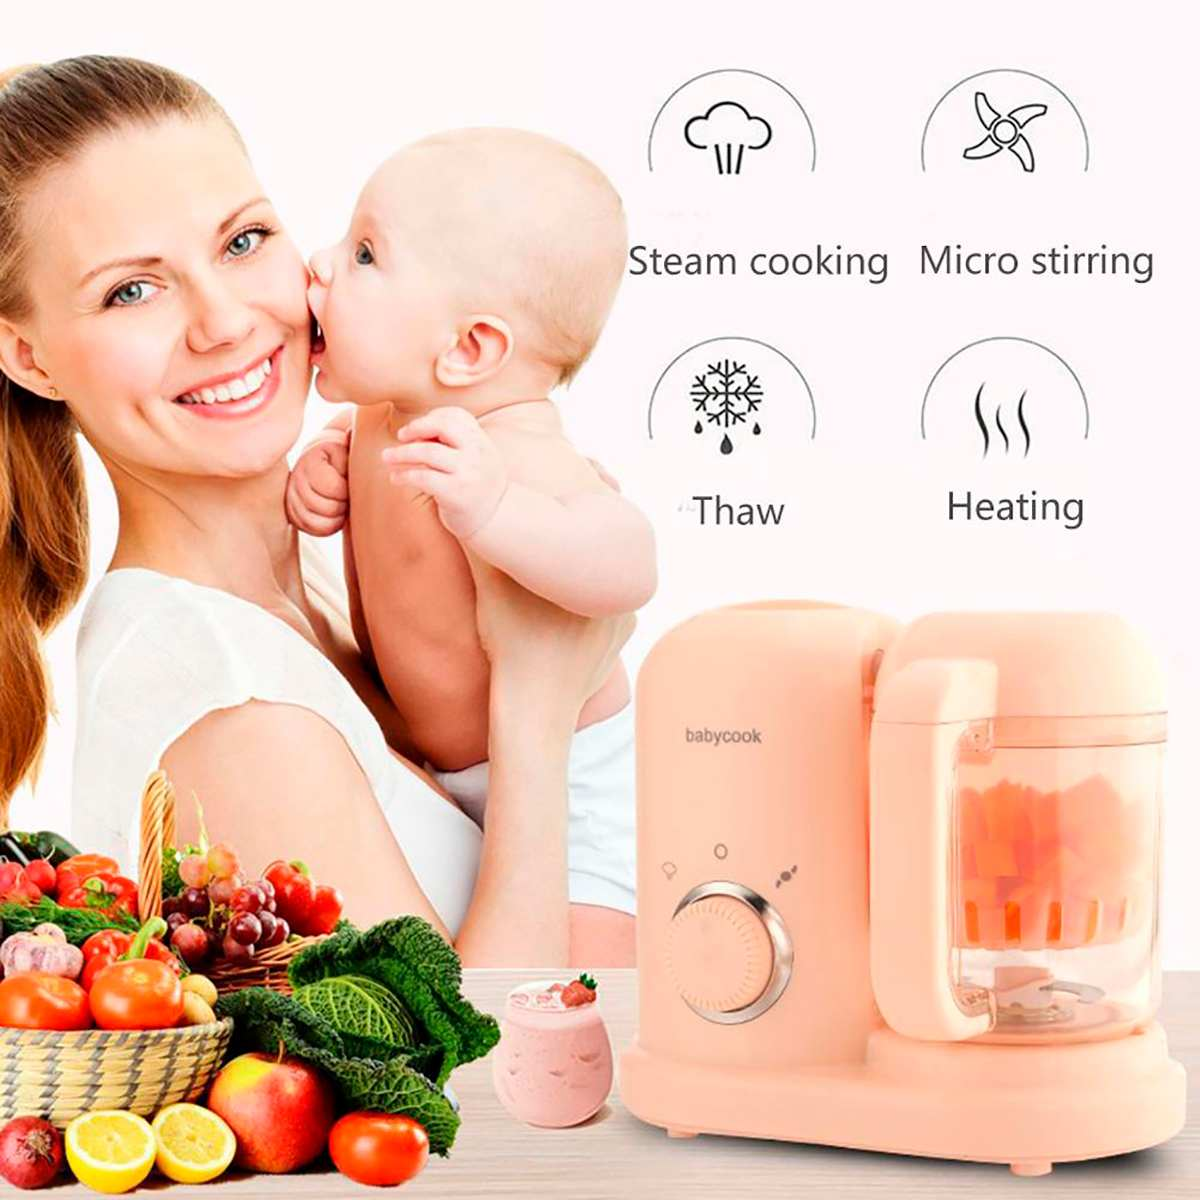 Baby Food Maker Multifunction Electric Children Food Cooking Maker Steamer Mixing Grinder Blenders Processor Juicing Stirring